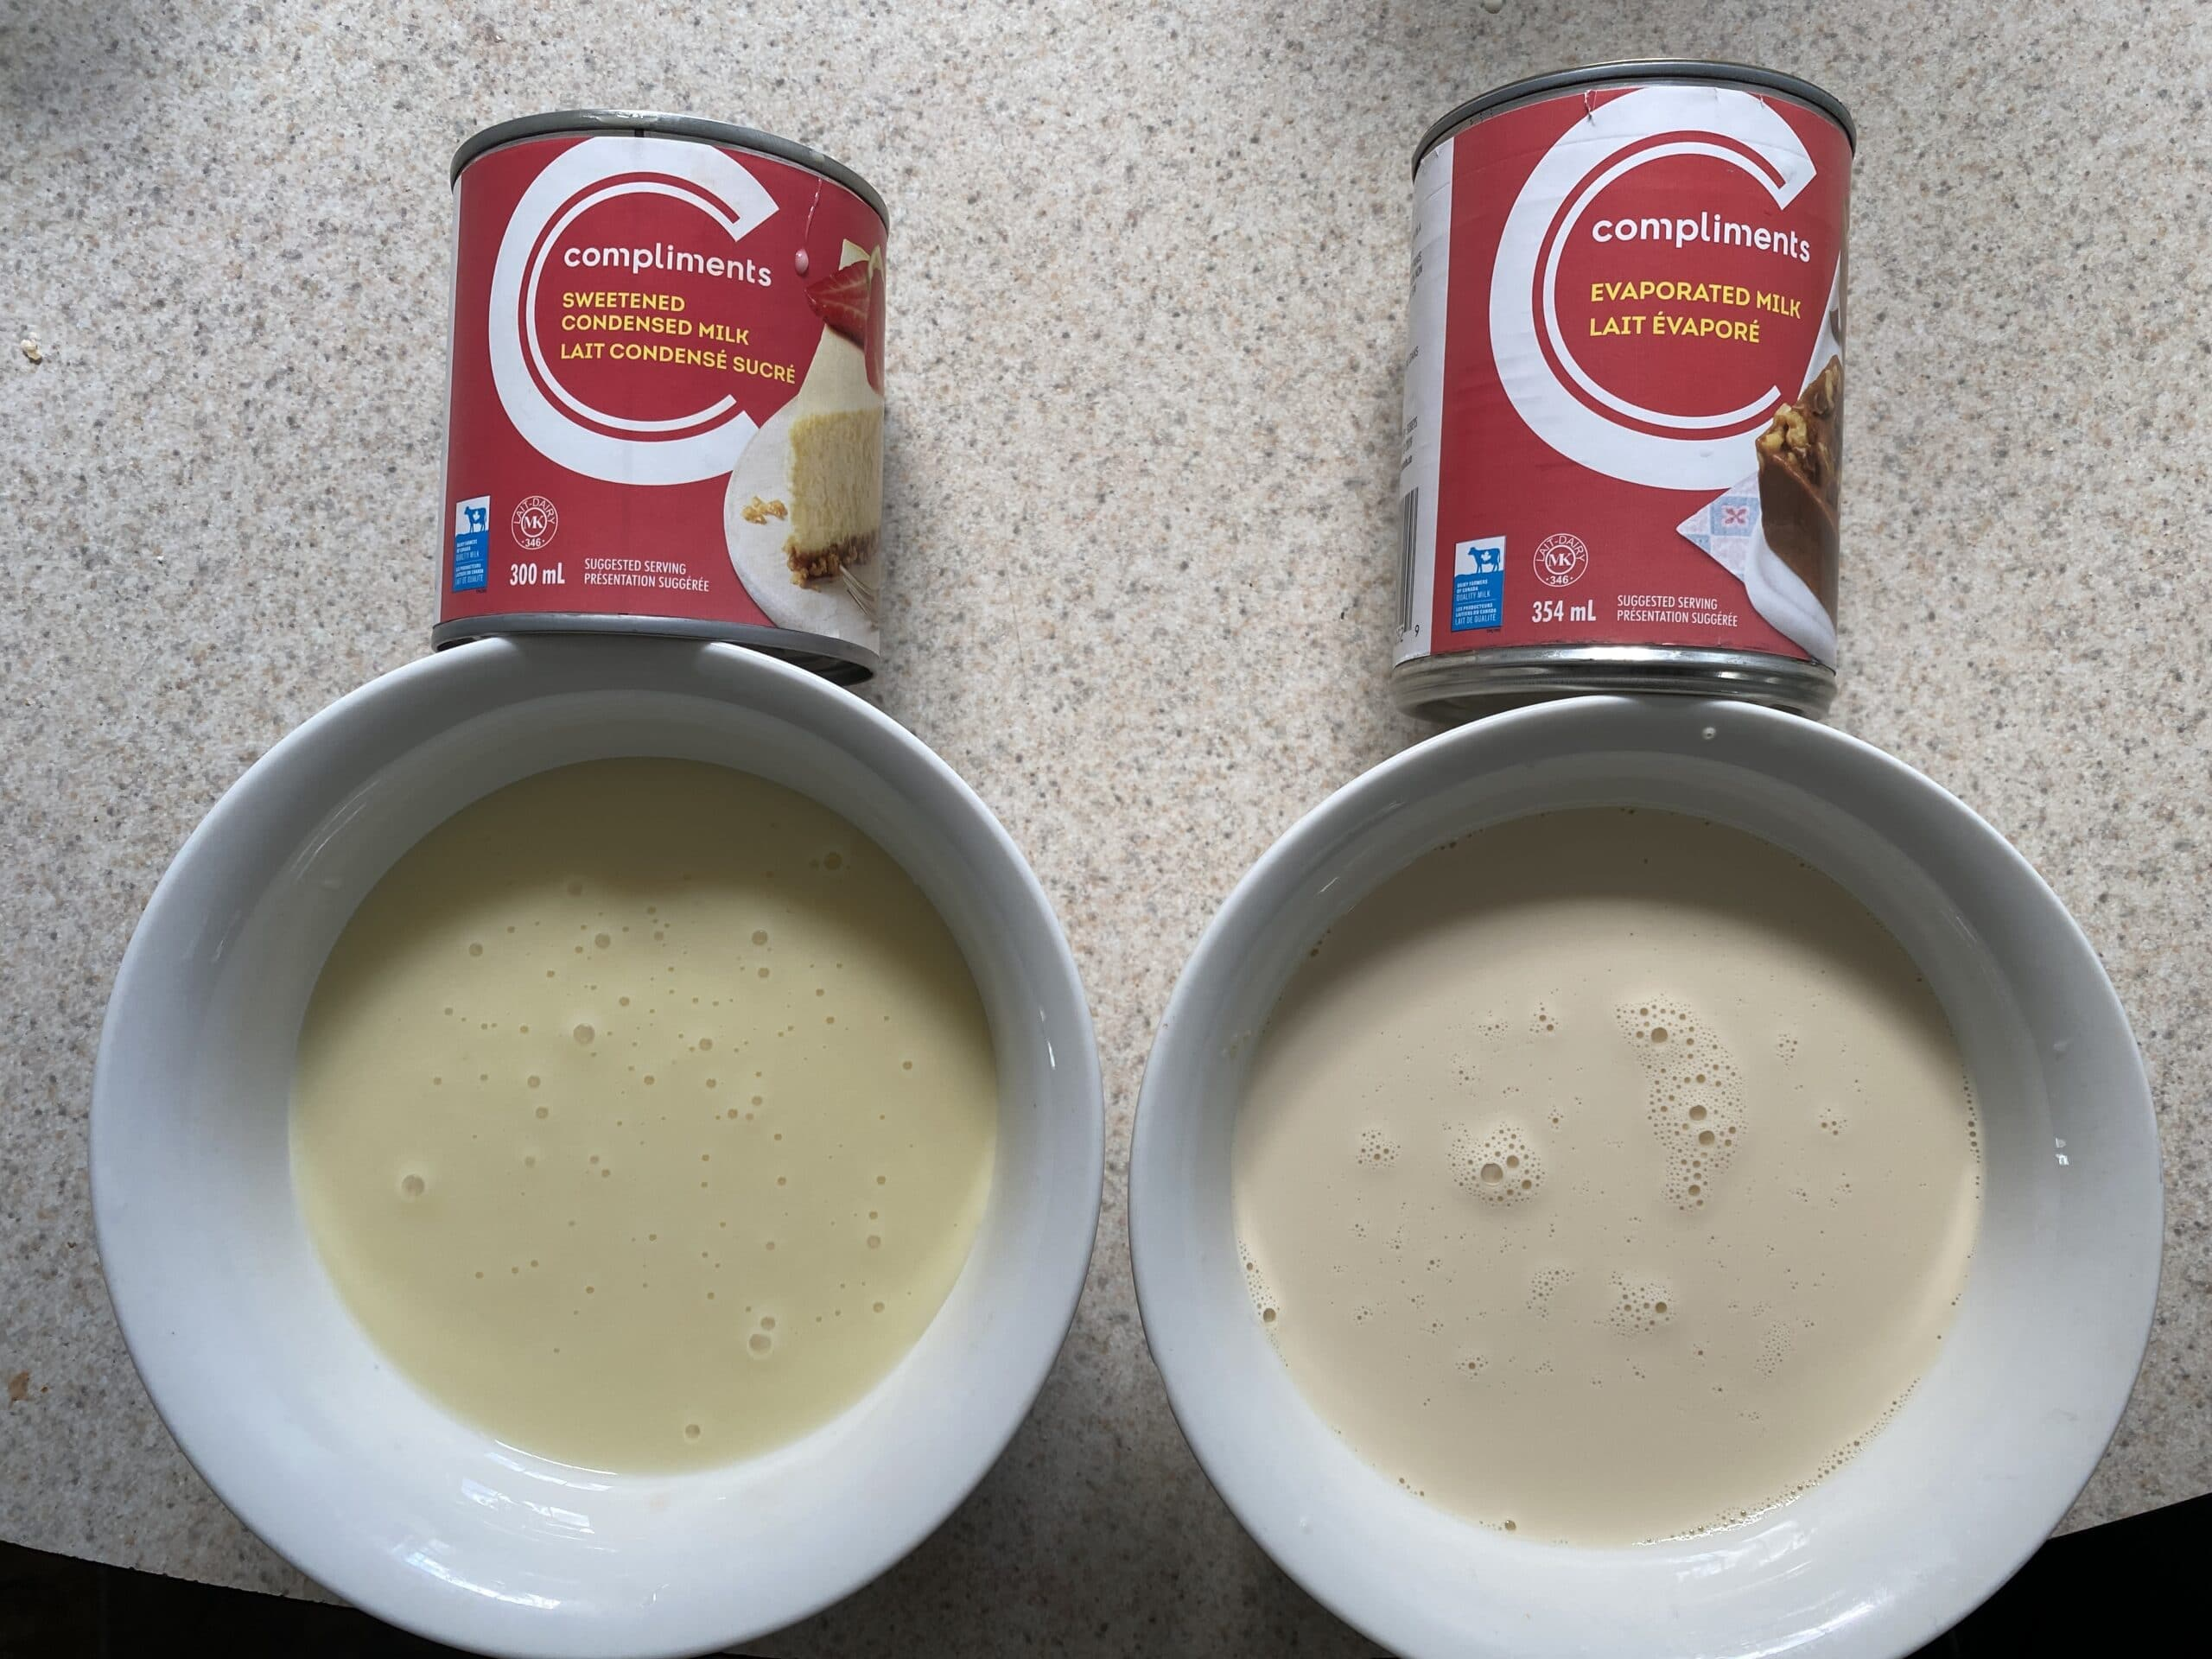 Two bowls filled with condensed milk versus evaporated milk to show the difference in texture.